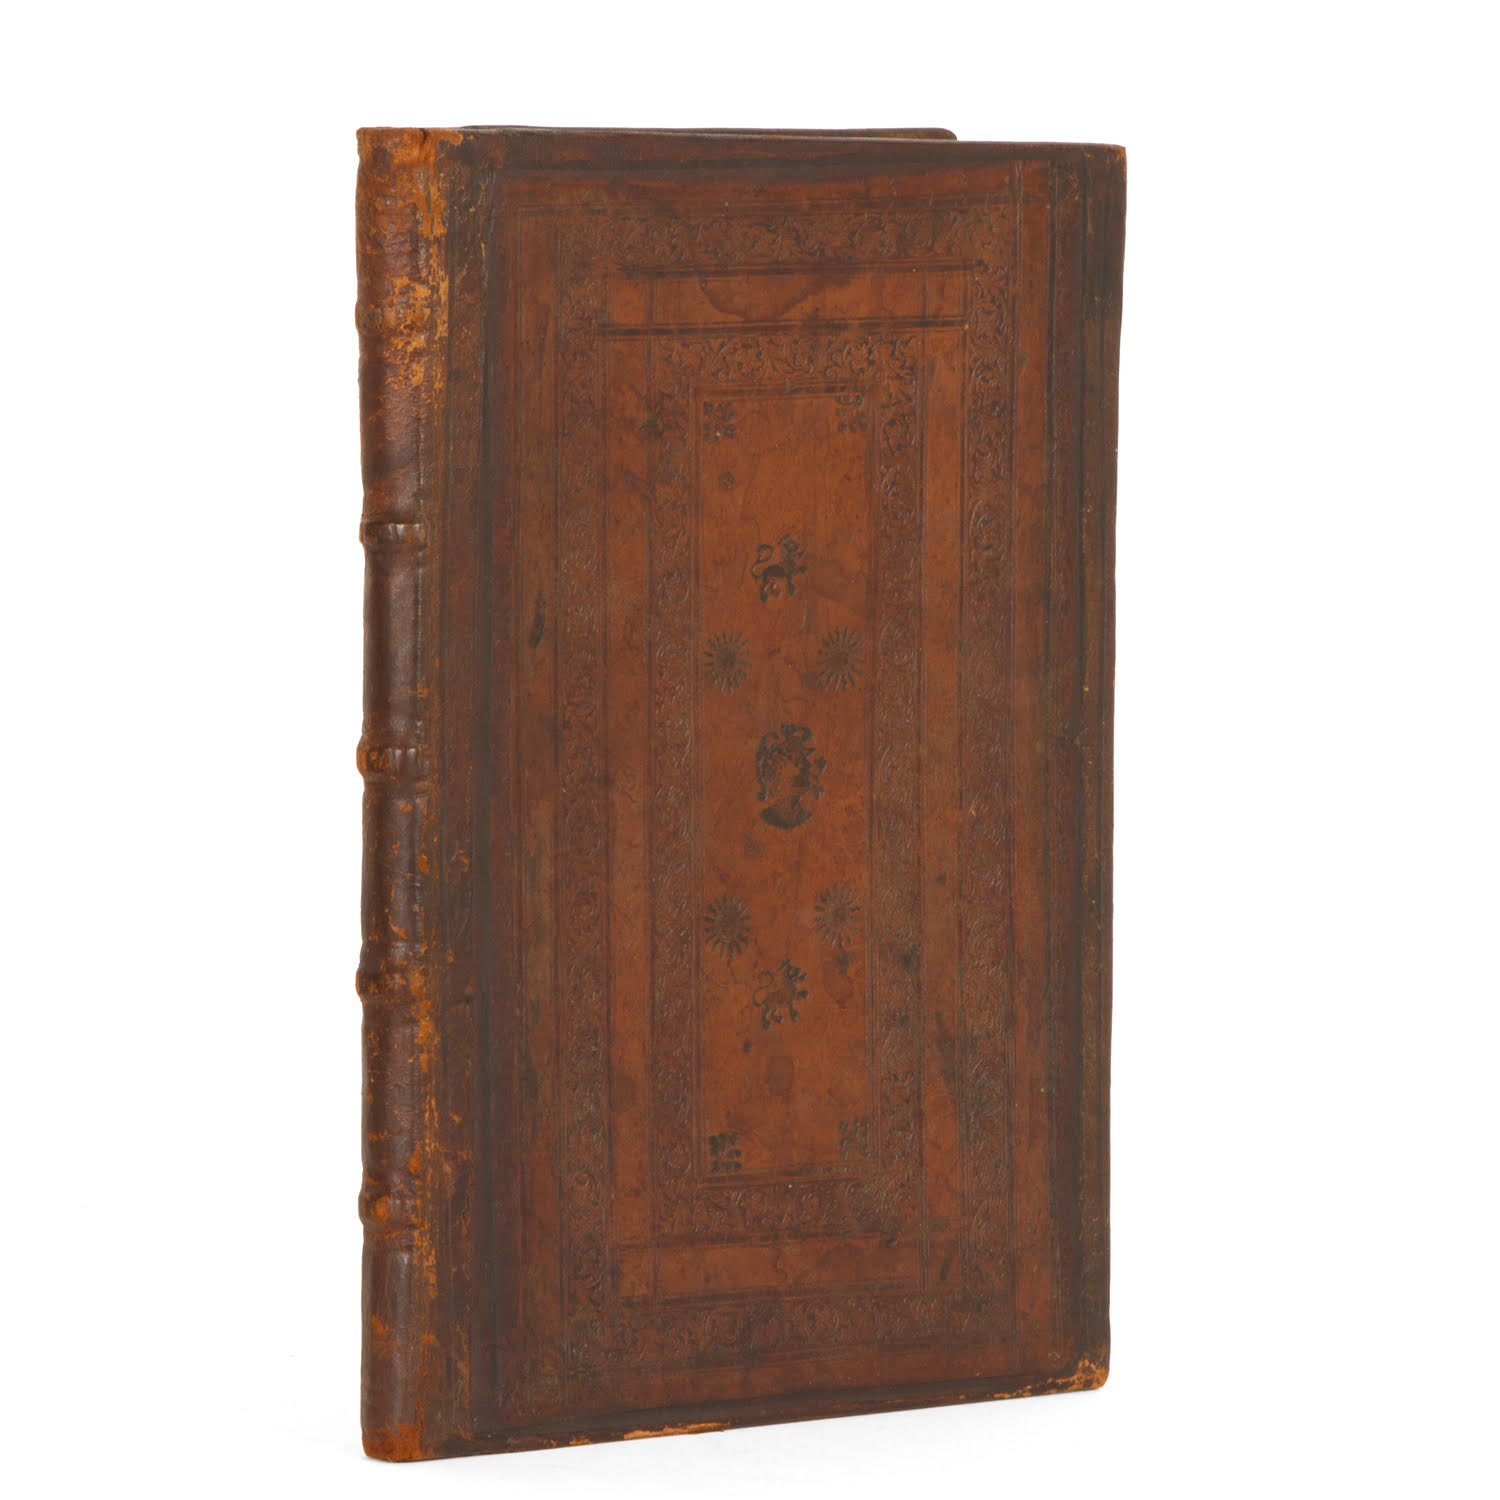 Marco Polo, third Spanish edition of  Travels, 1529